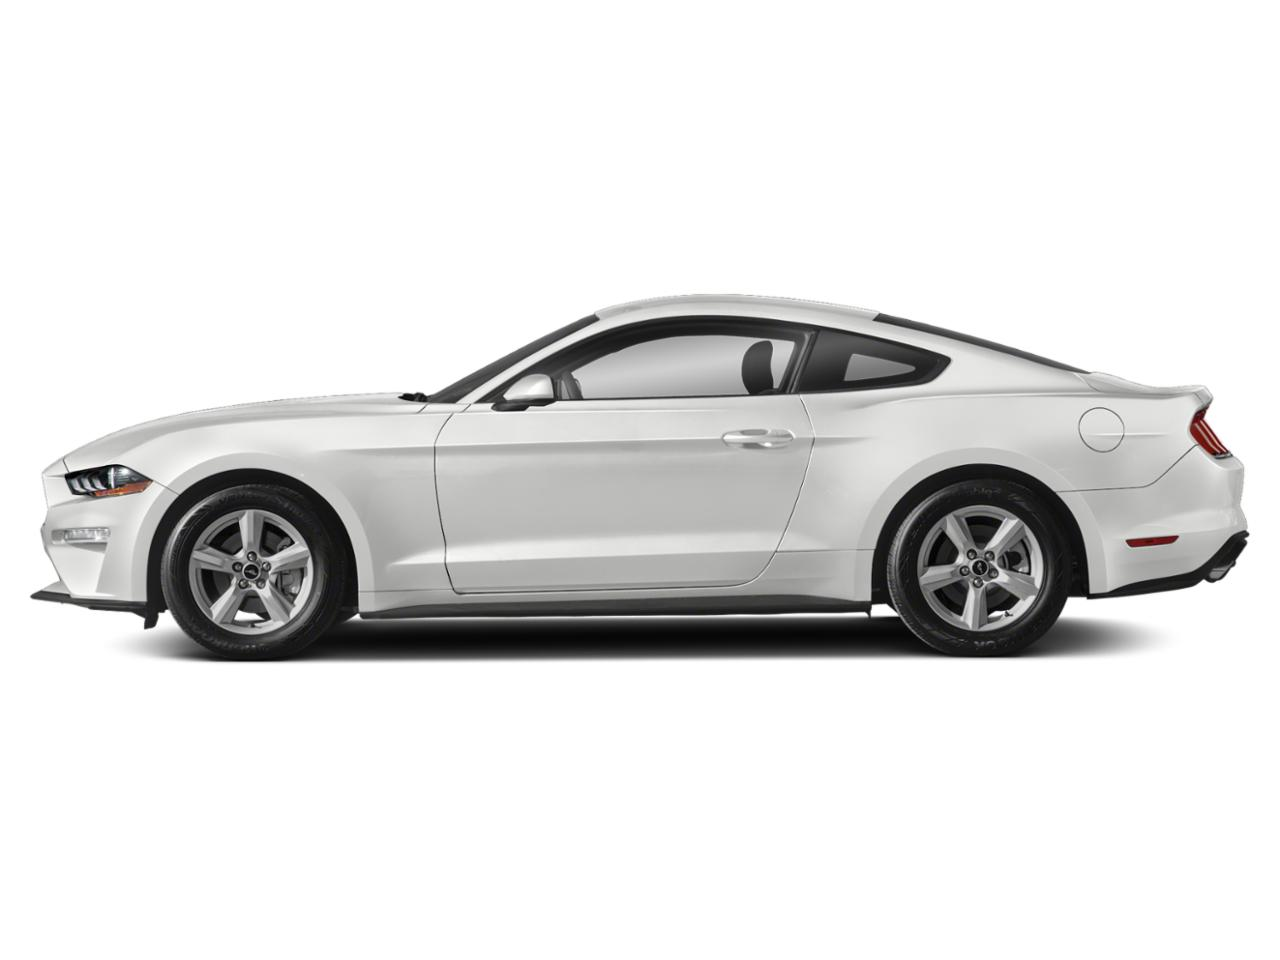 New 2020 Ford Mustang Oxford White In Chicago Northwest Indiana Vin 1fa6p8cf2l5169387